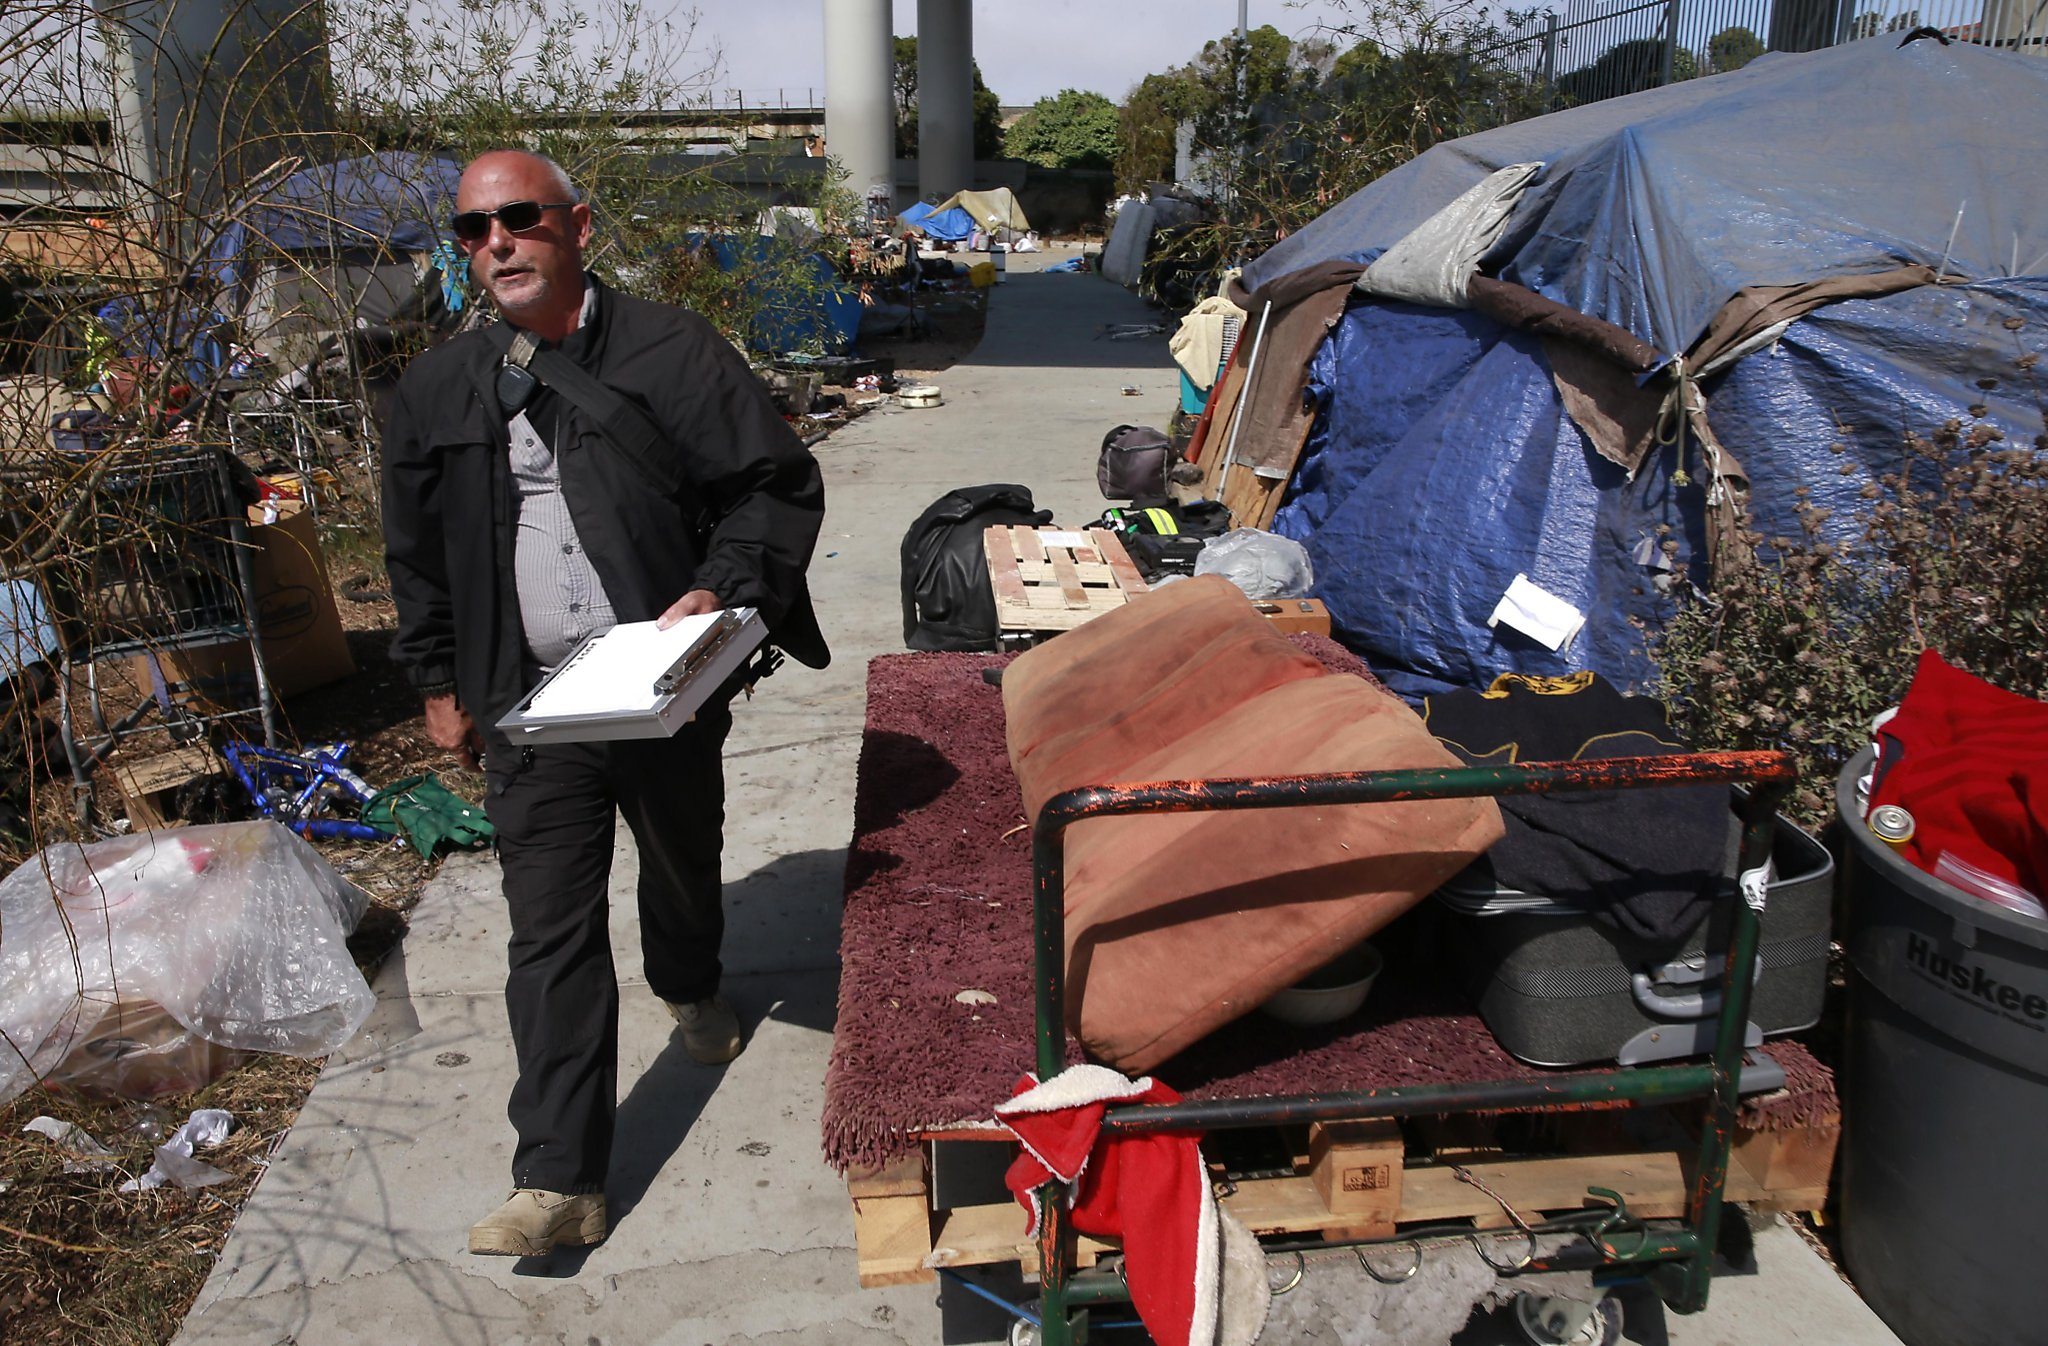 The Man Who S Trying To Clear The Tents From Sf S Streets